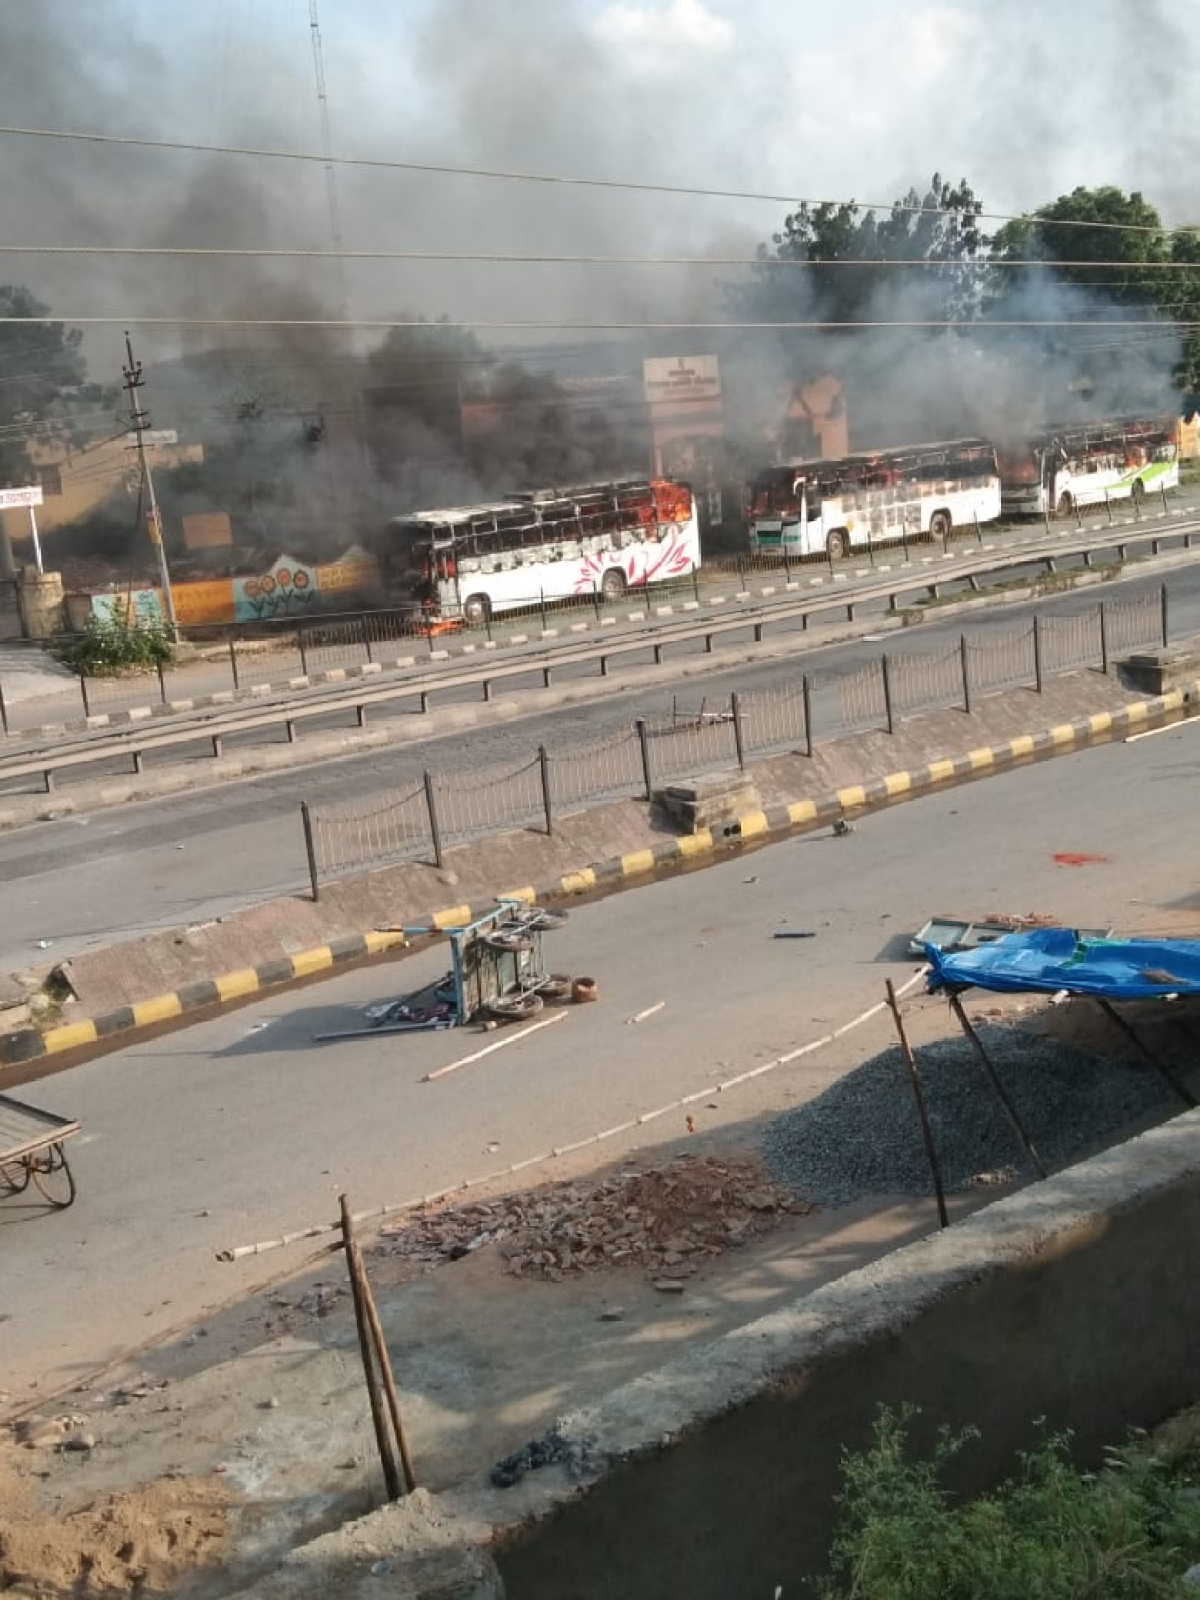 Rajasthan: Protesters indulge in arson and loot, STF called in to control situation in Dungarpur